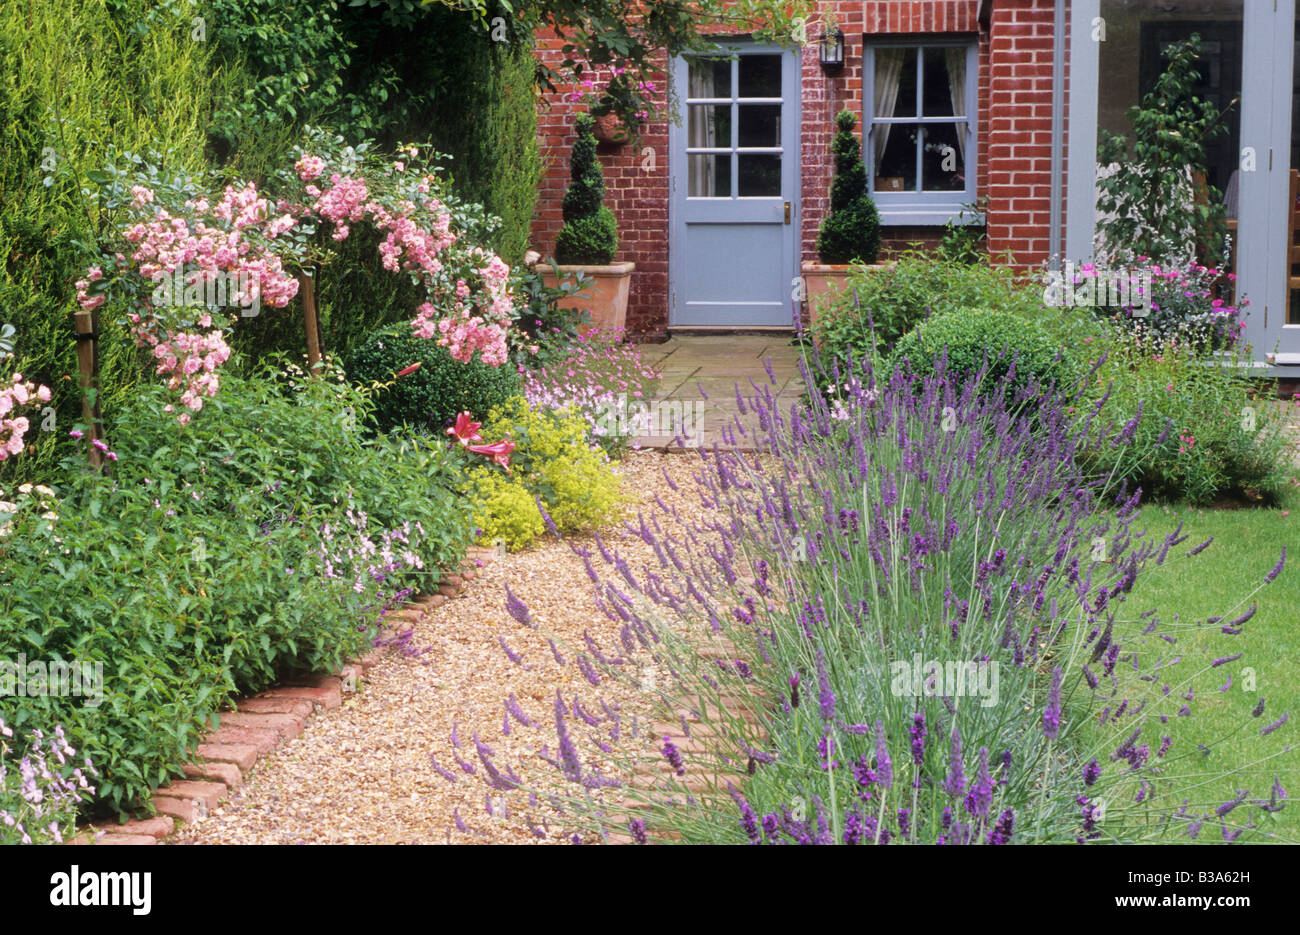 Brick And Gravel Path Borders With Lavender Rosa The